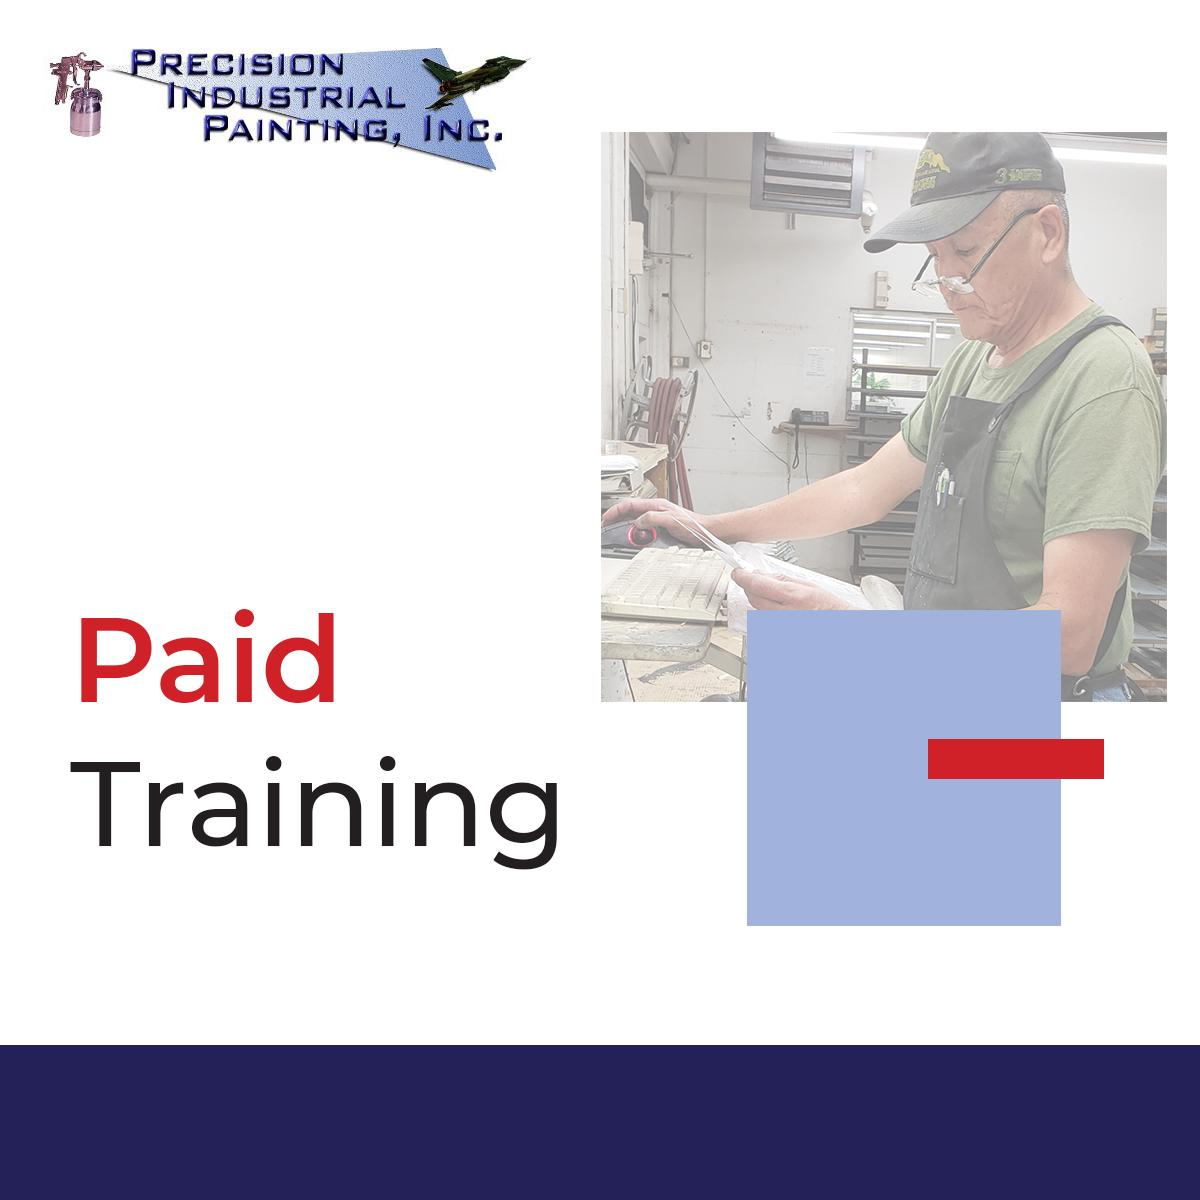 When you join the Precision Industrial Painting team, you receive PAID on-site training. Looking to start your next career? Apply today! https://bit.ly/2N8BoXK  #PrecisionIndustrialPainting #TeamPIP #PowderCoating #AZJobs #PhoenixJobs #Phoenix #Arizona #NowHiring #EntryLevel